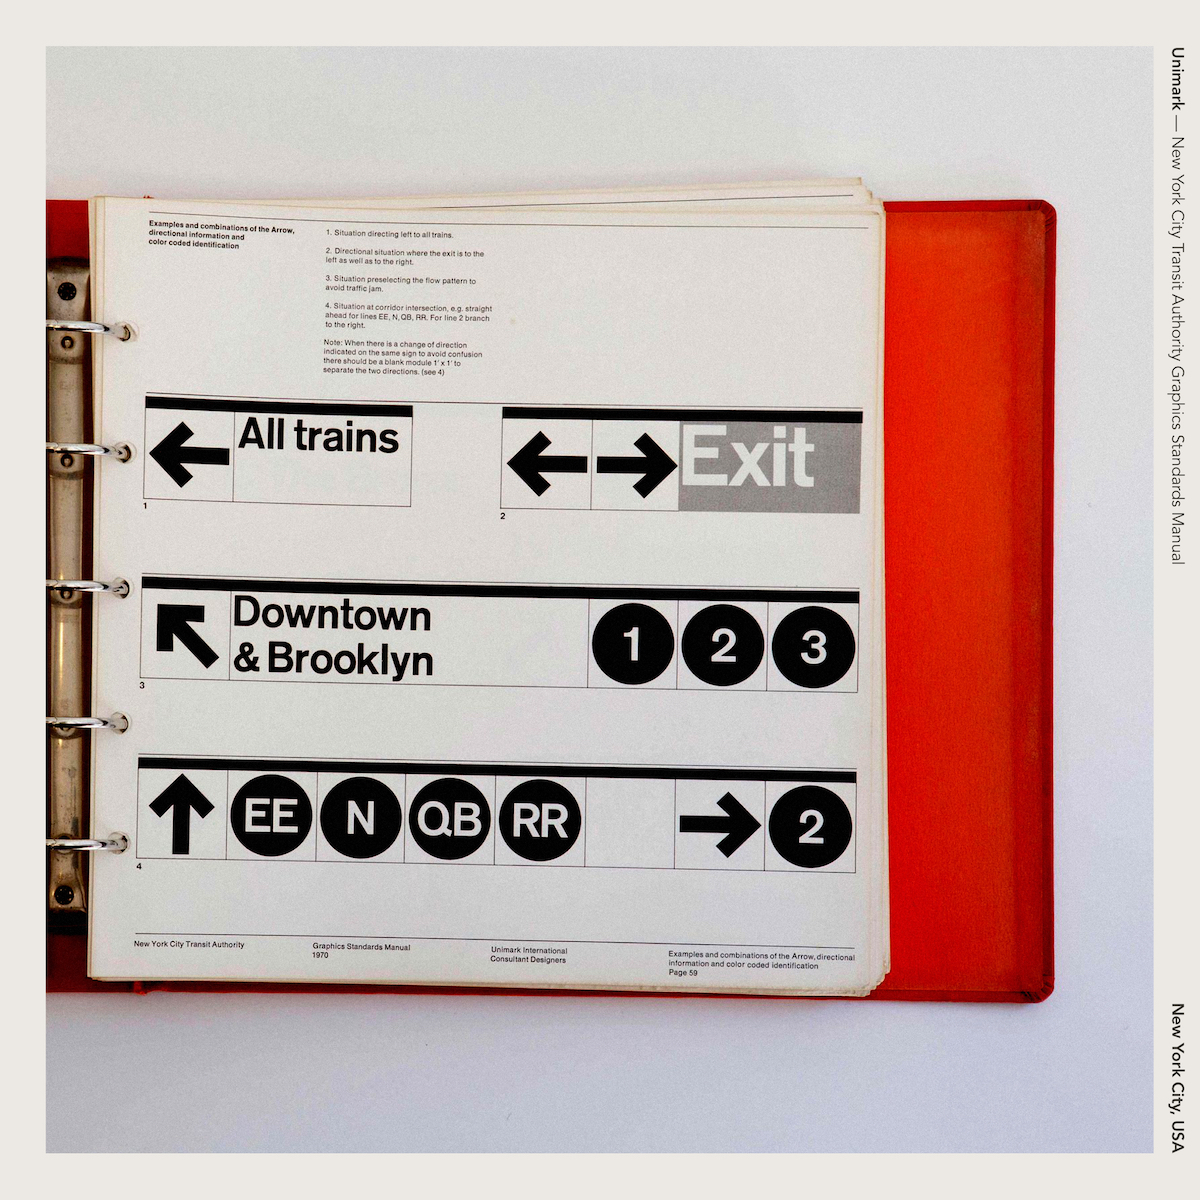 Unimark — New York City Transit Authority Graphics Standards Manual